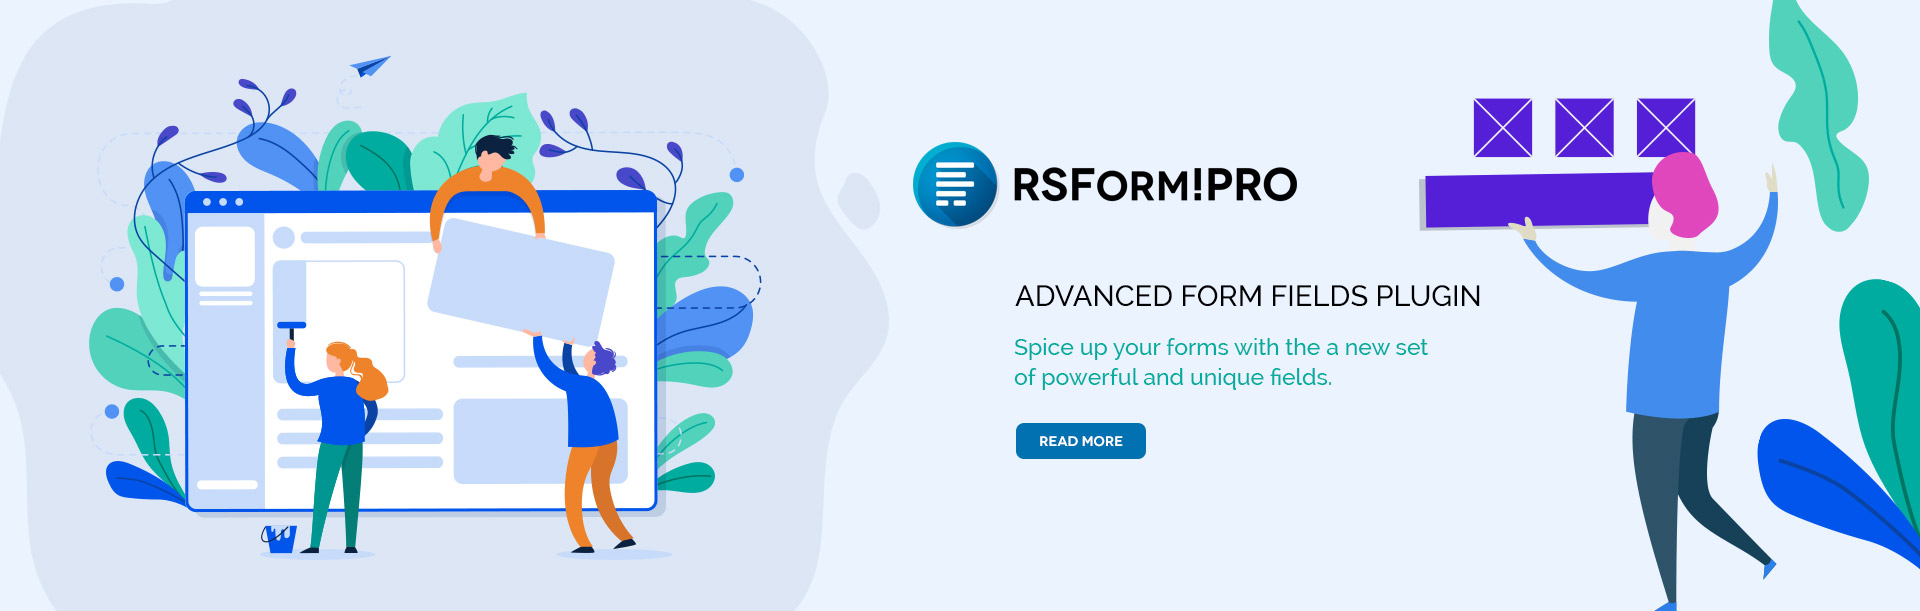 RSForm!Pro Advanced Form Fields